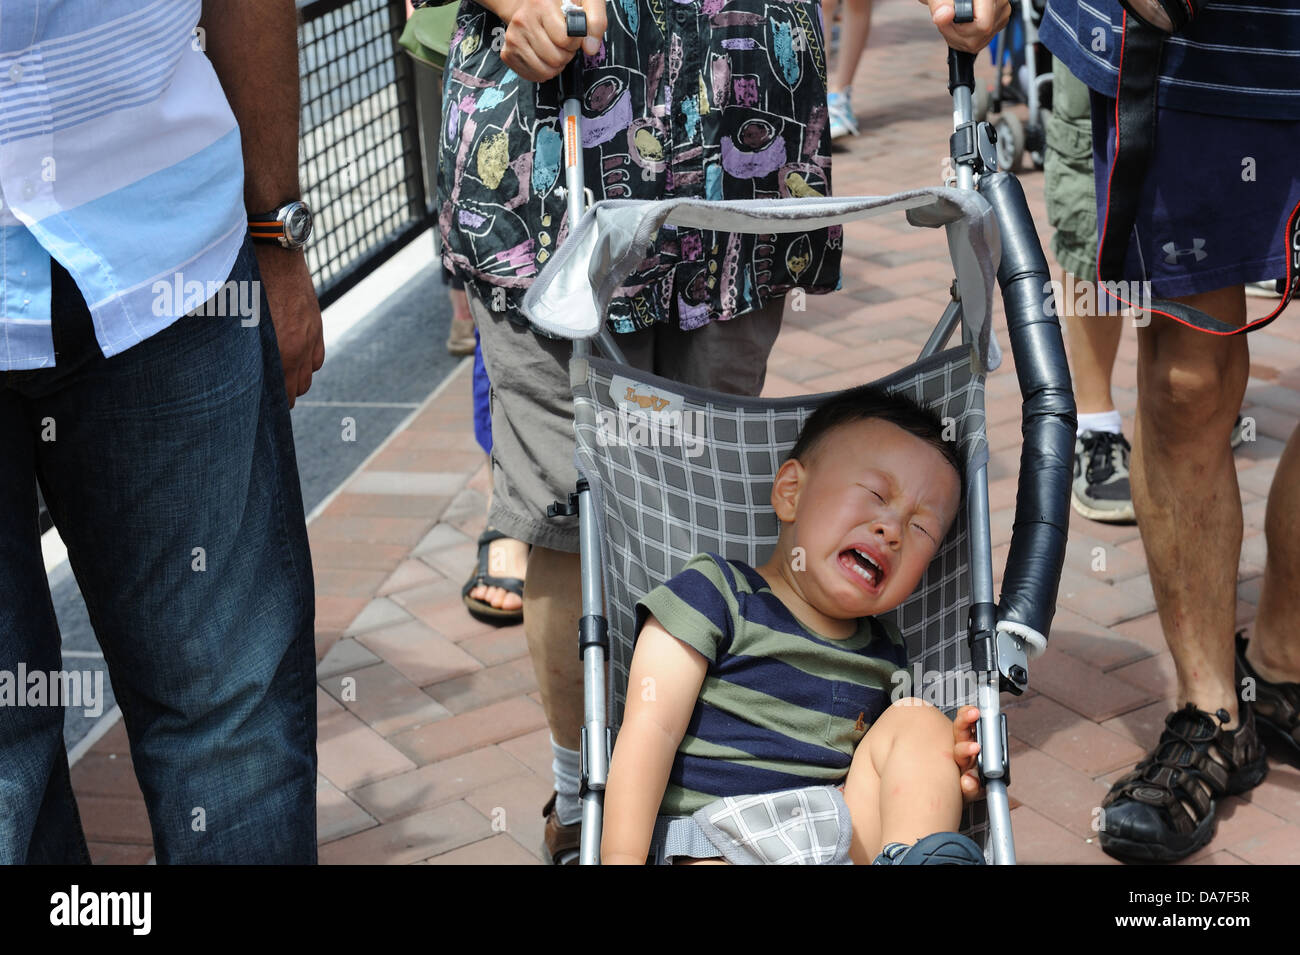 A crying child on Liberty Island in New York harbor. July 4, 2013 - Stock Image